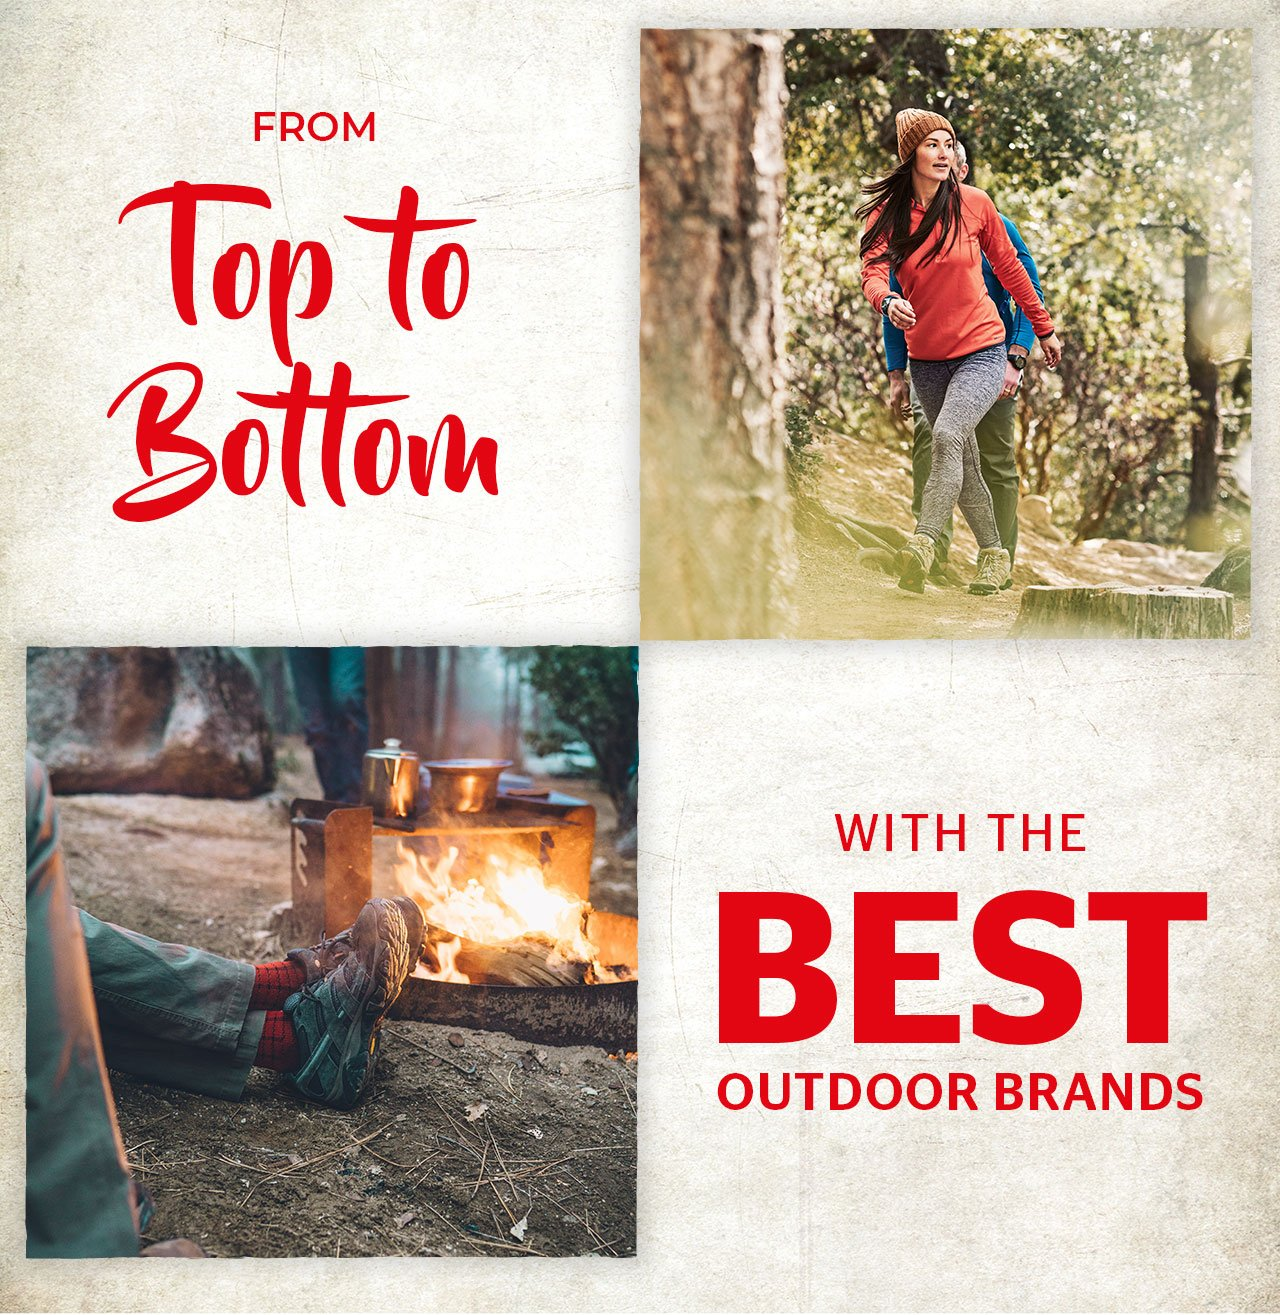 FROM TOP TO BOTTOM WITH THE BEST OUTDOOR BRANDS